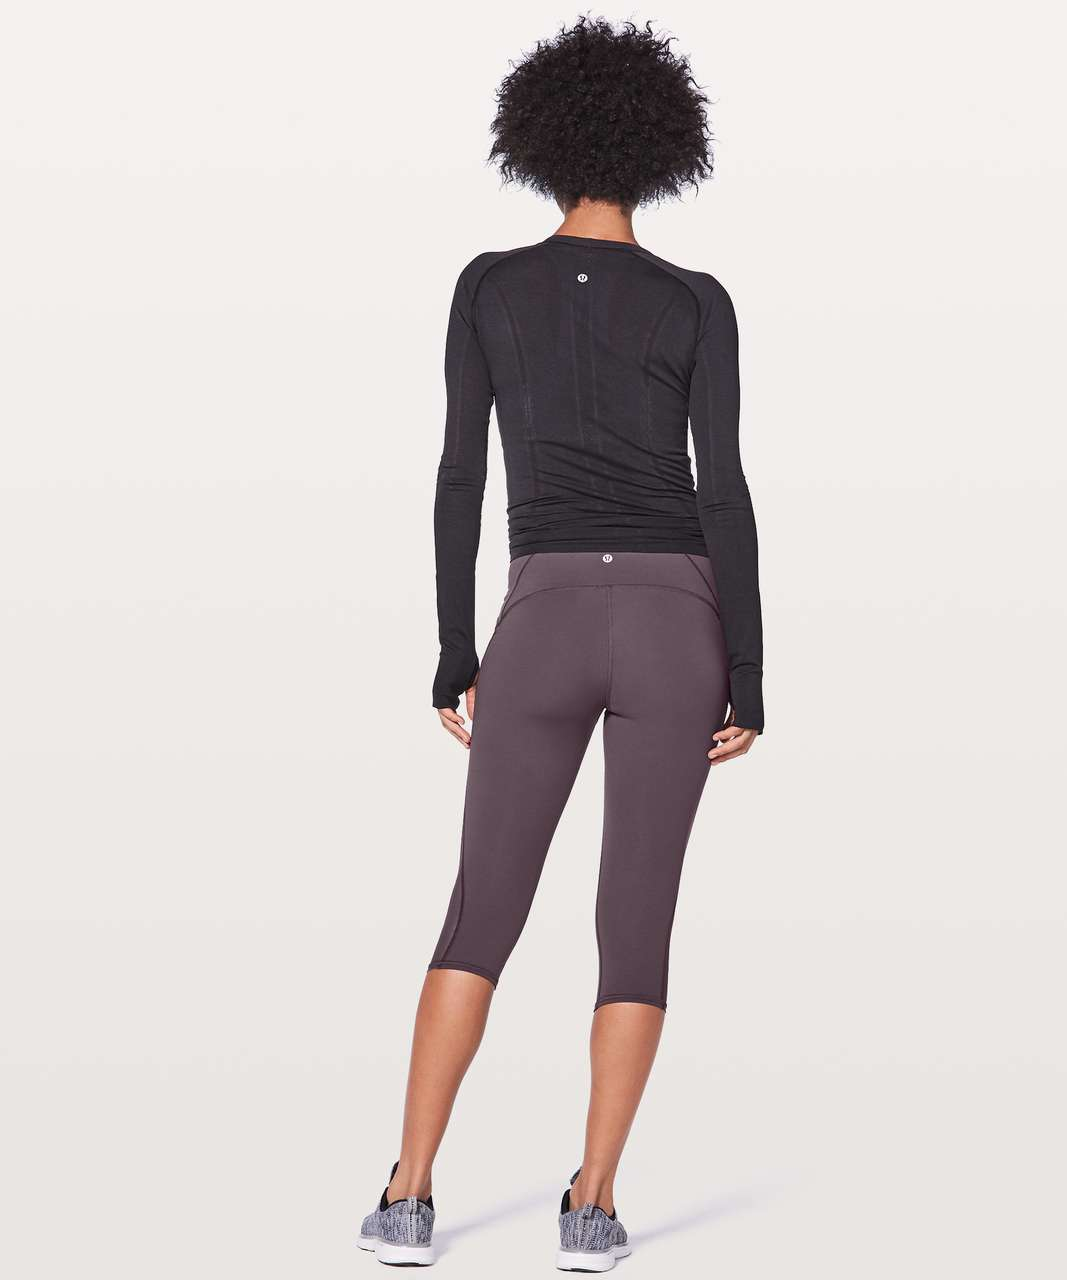 "Lululemon Train Times Crop 17"" - Black Currant"